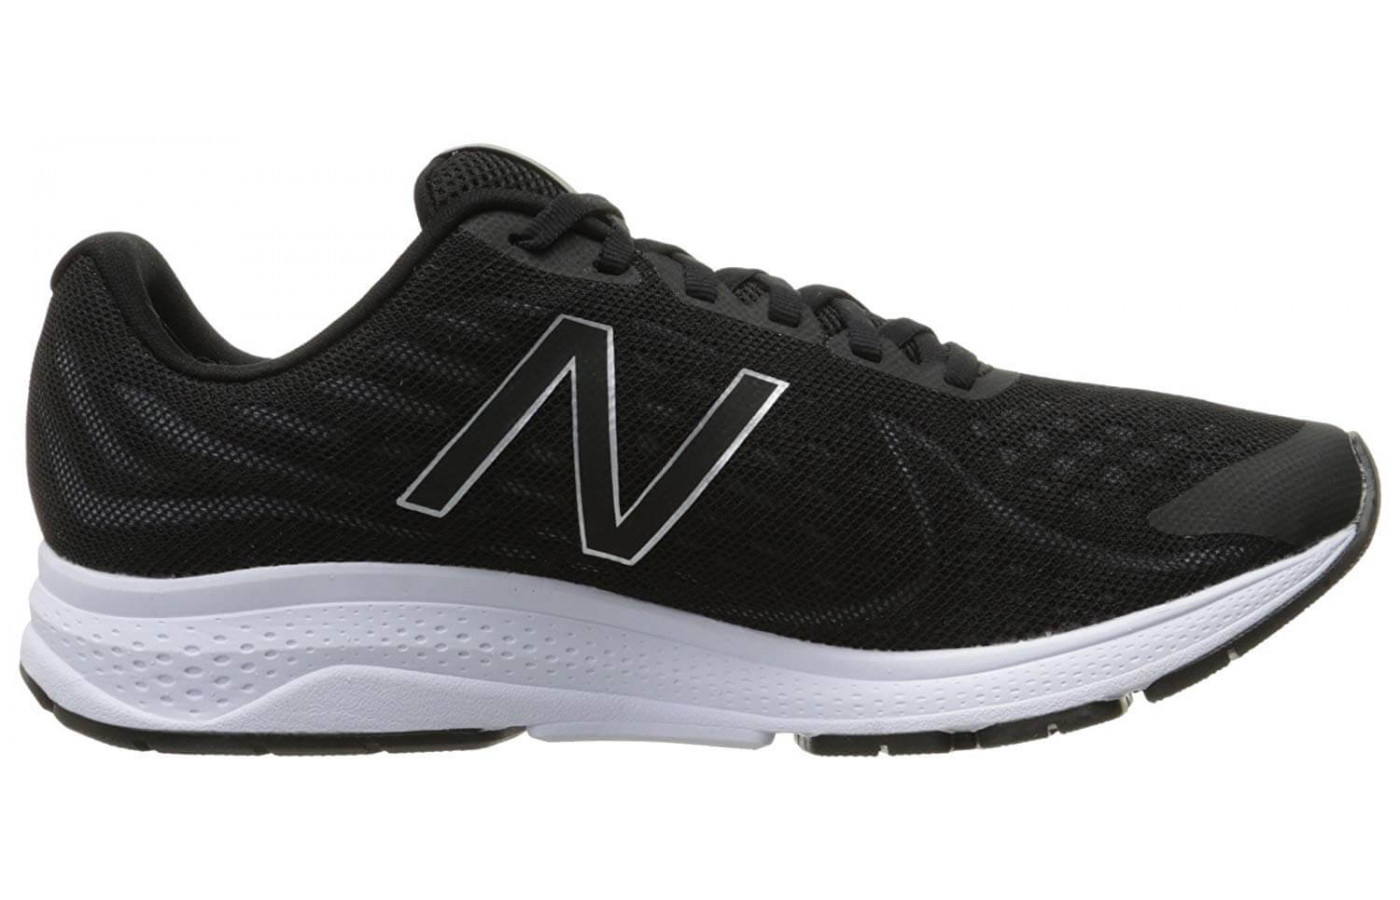 The lateral side of the New Balance Vazee Rush v2.